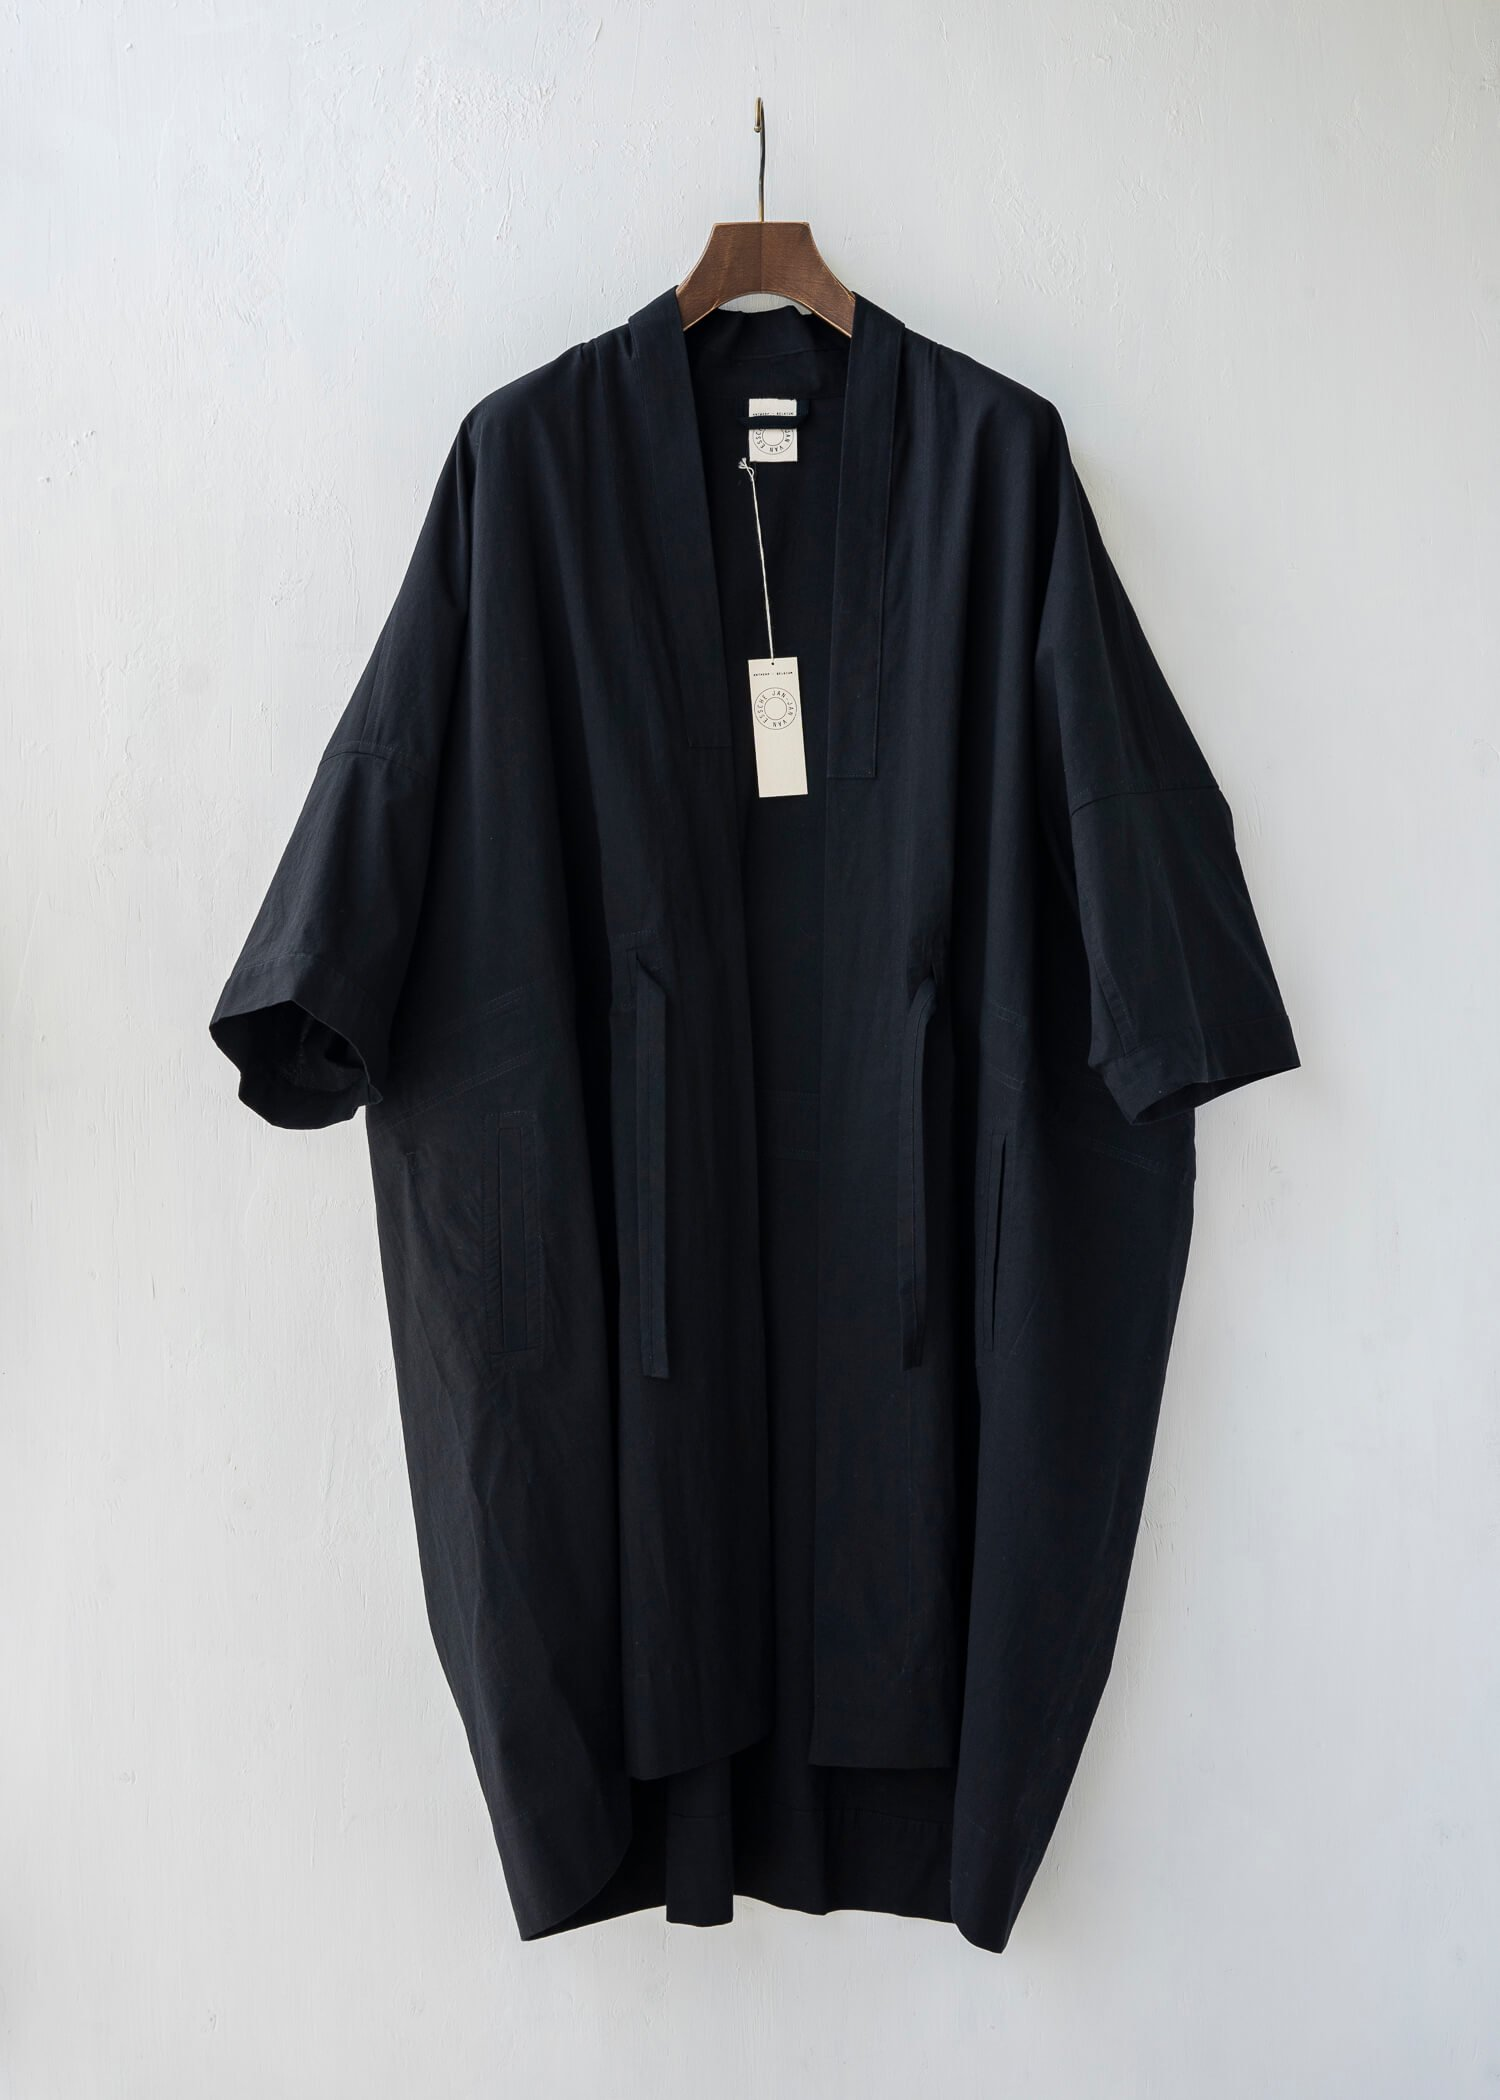 JAN-JAN VAN ESSCHE / KIMONO#6 KIMONO SUMMER COAT BLACK RIDGED SHIRTING